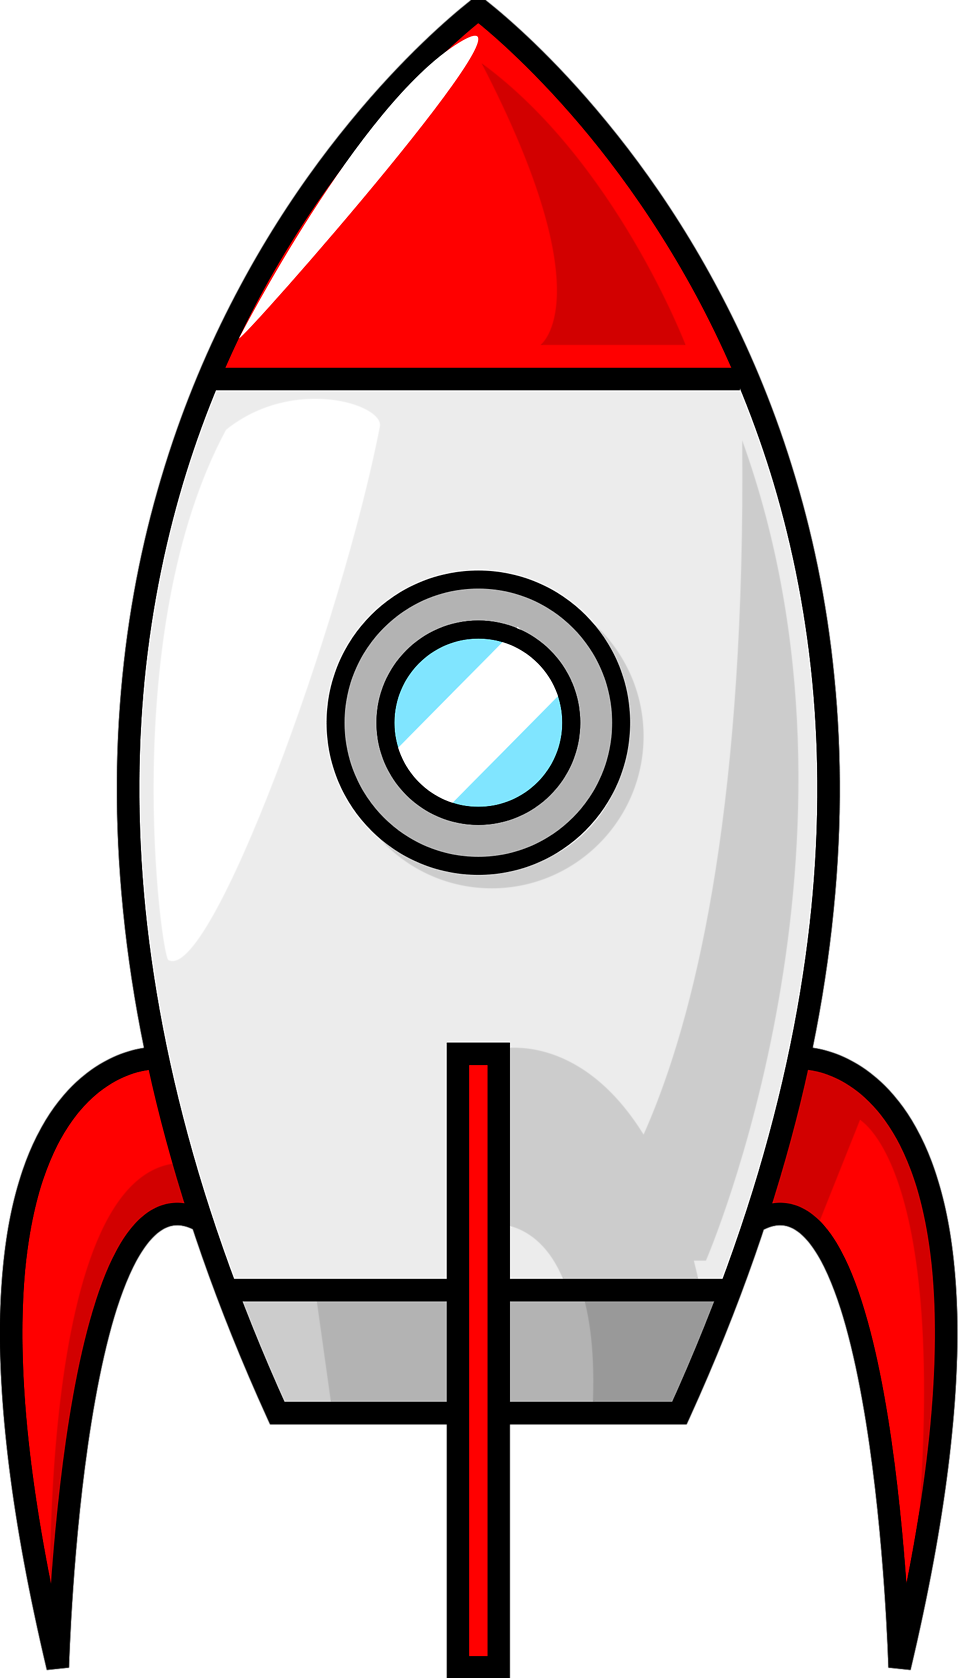 Clipart rocket yellow rocket. Cartoon rocketship shop of